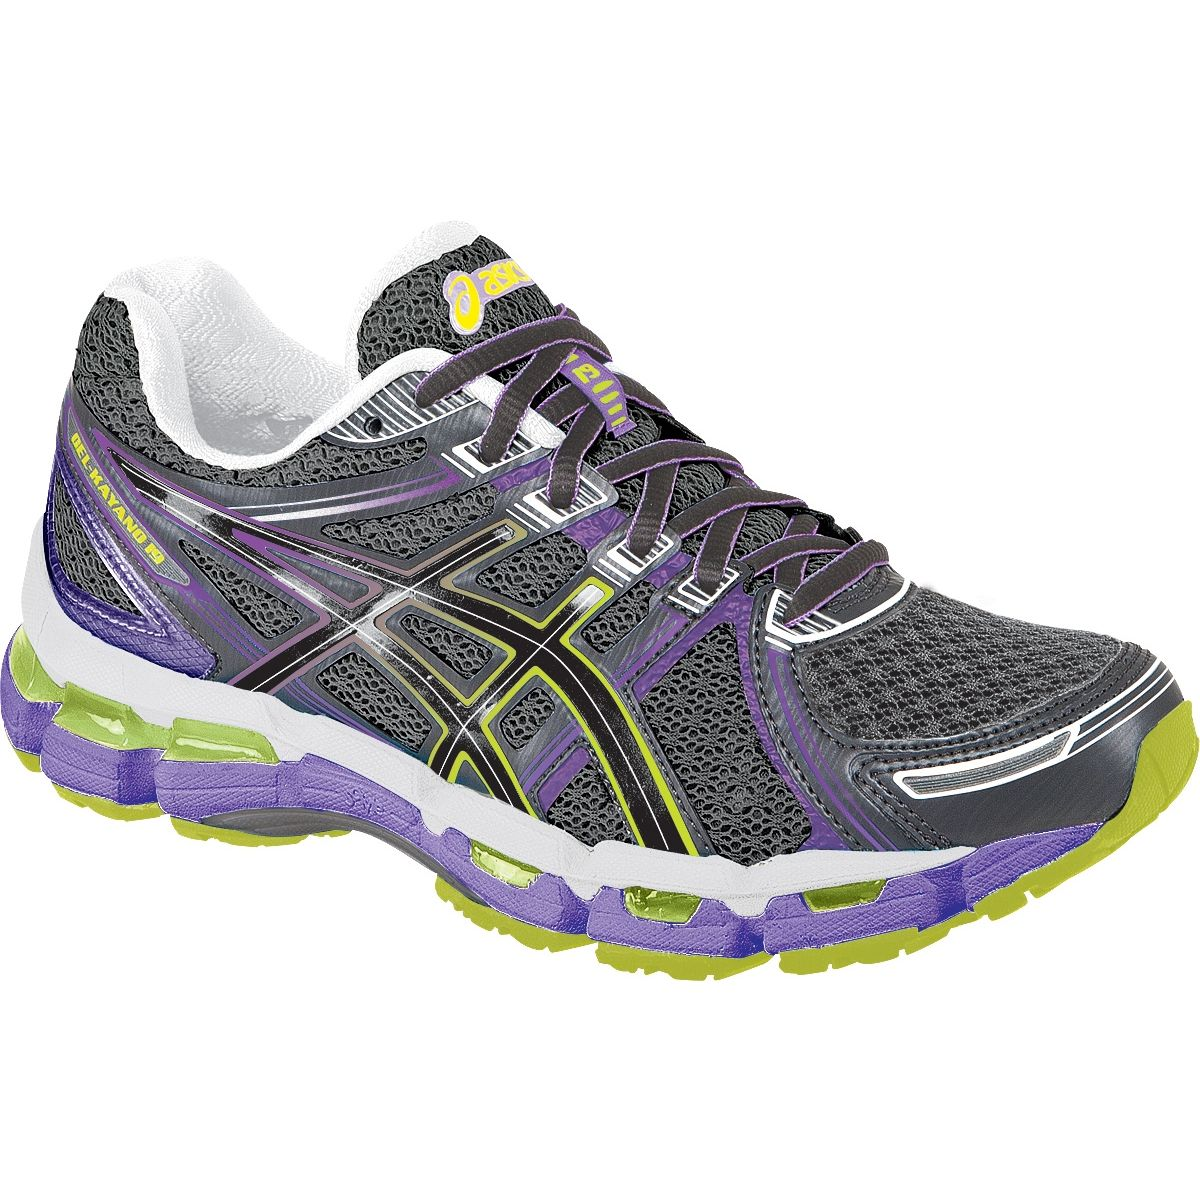 Asics Gel Kayano 19 Running Shoes Womens Sportchek Ca Womens Running Shoes Shoes Running Shoes